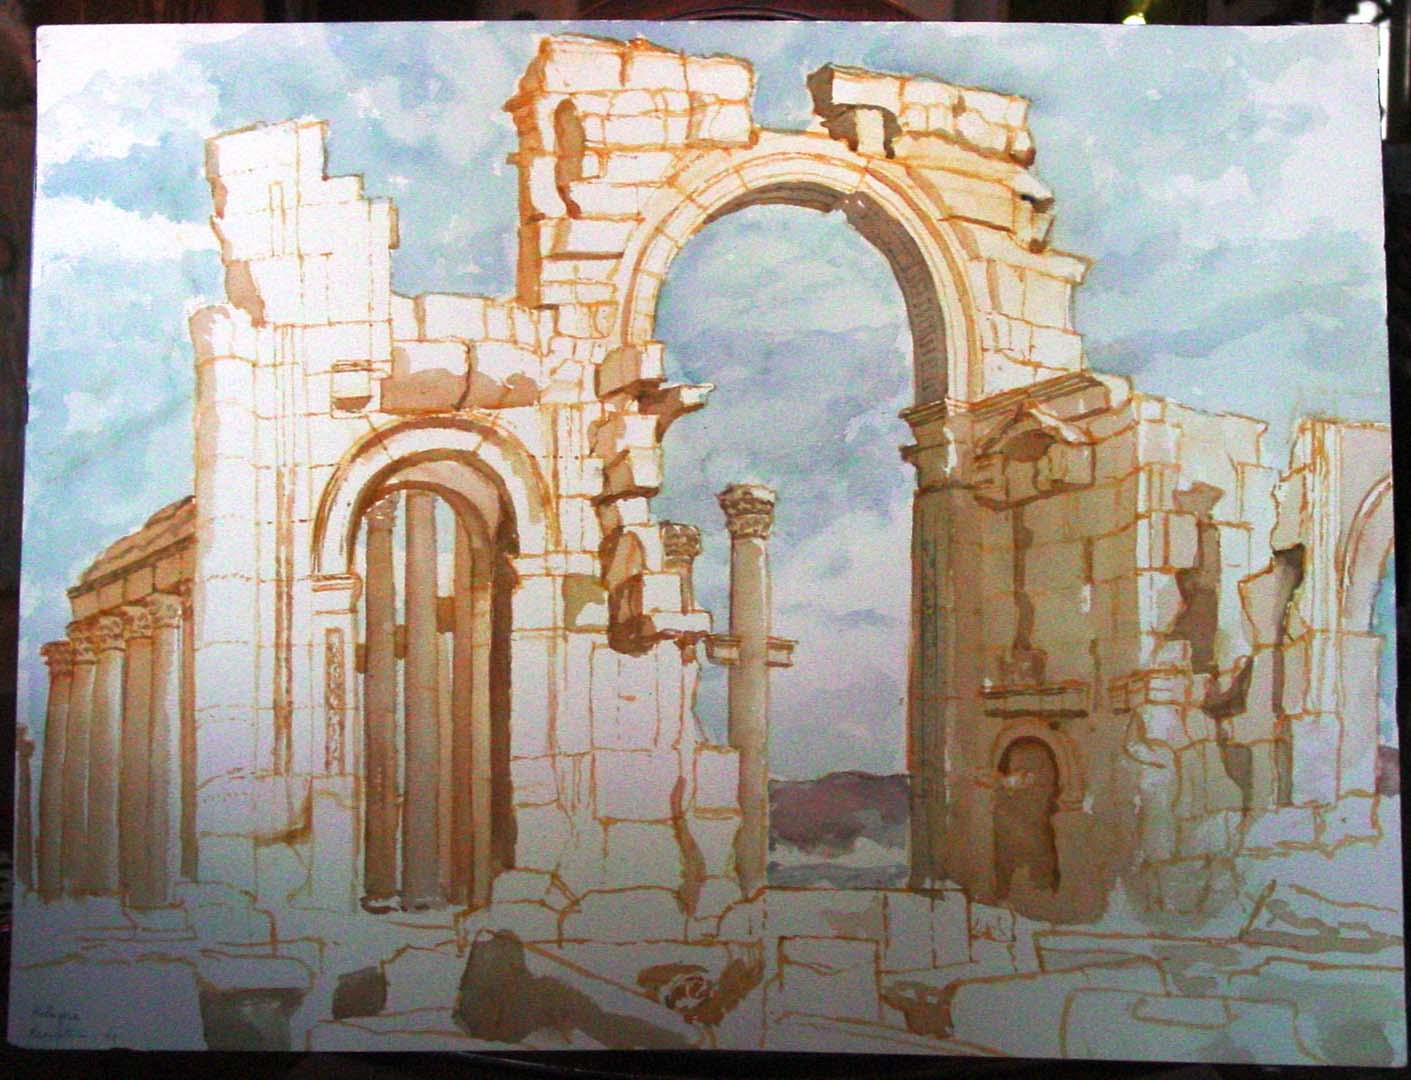 1993 Palmyra Watercolor on Paper 18 x 24